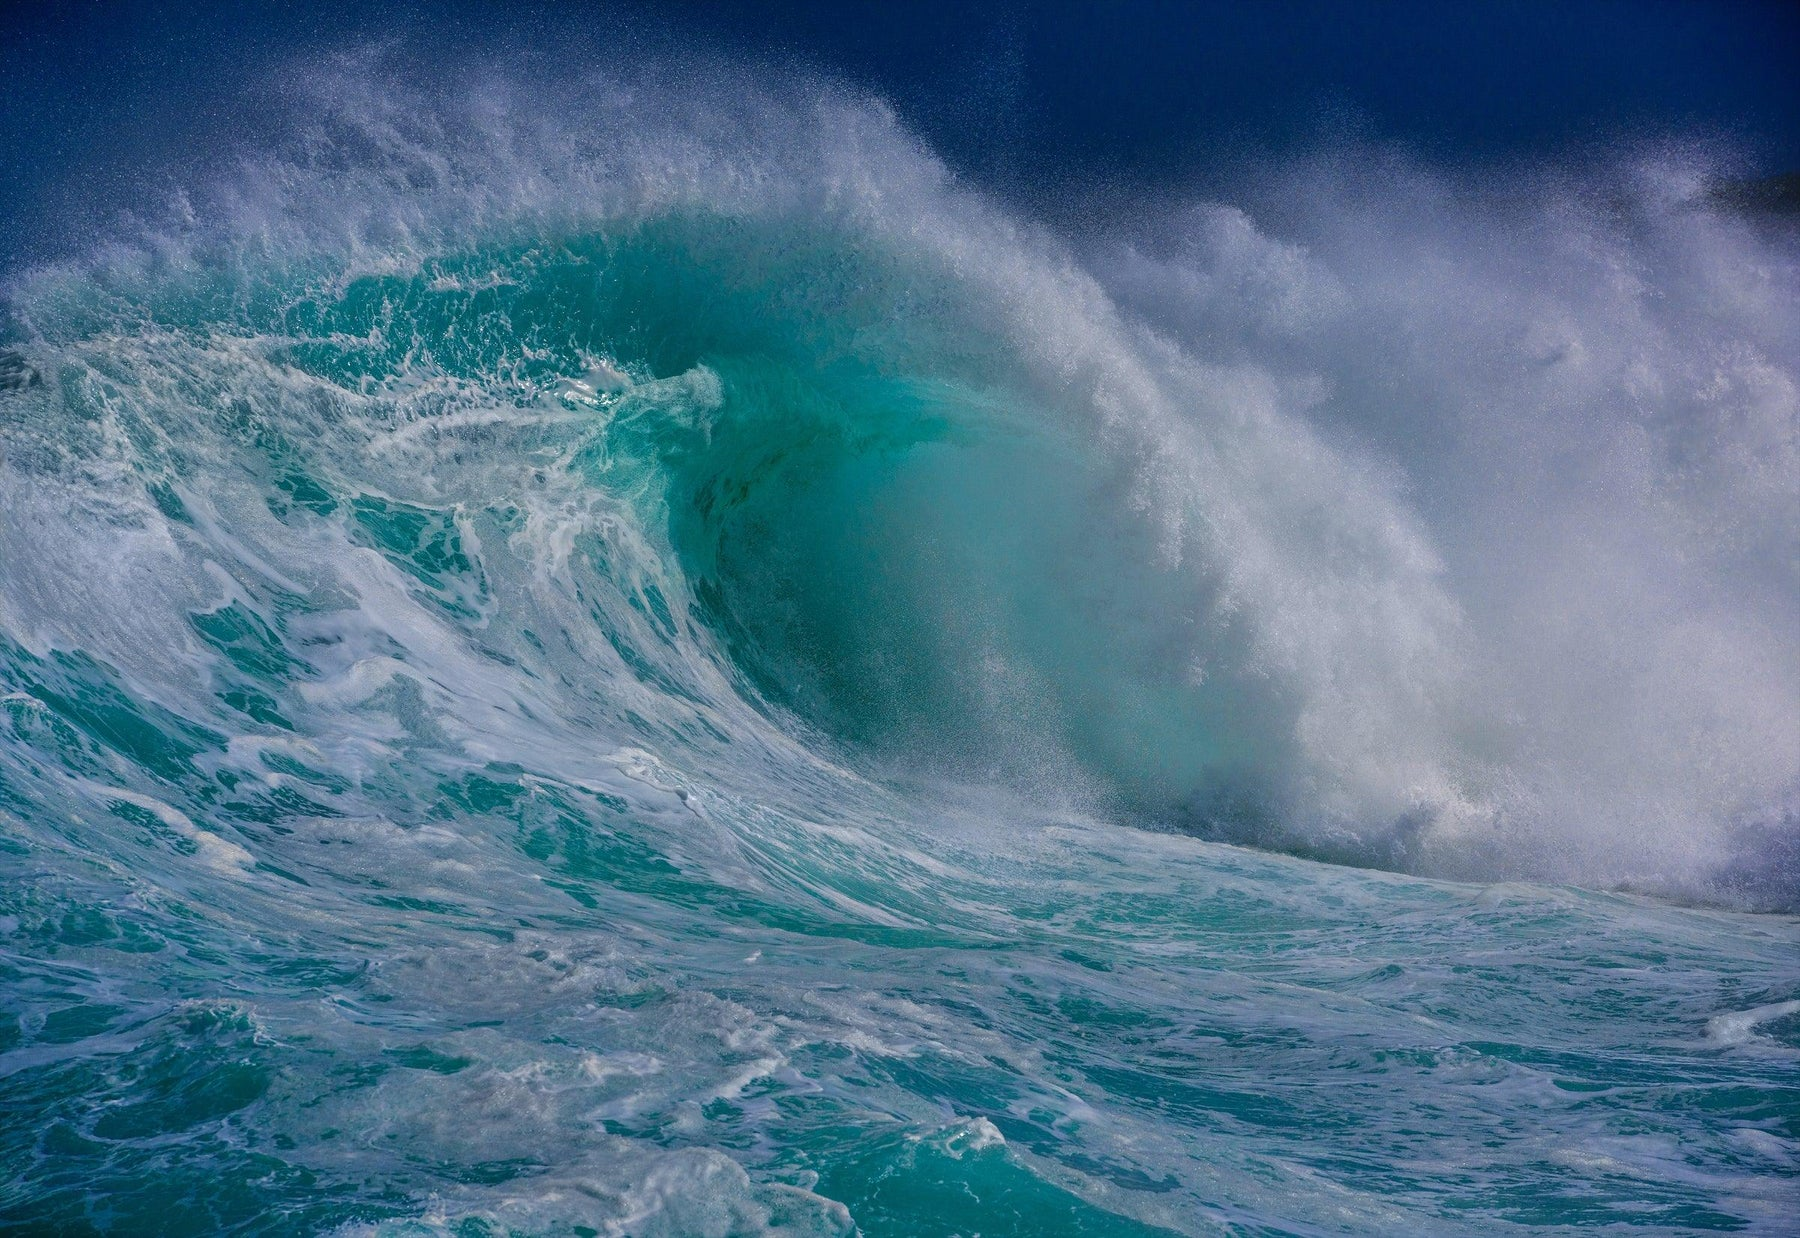 Large white and turquoise wave crashing into the ocean in Maui Hawaii